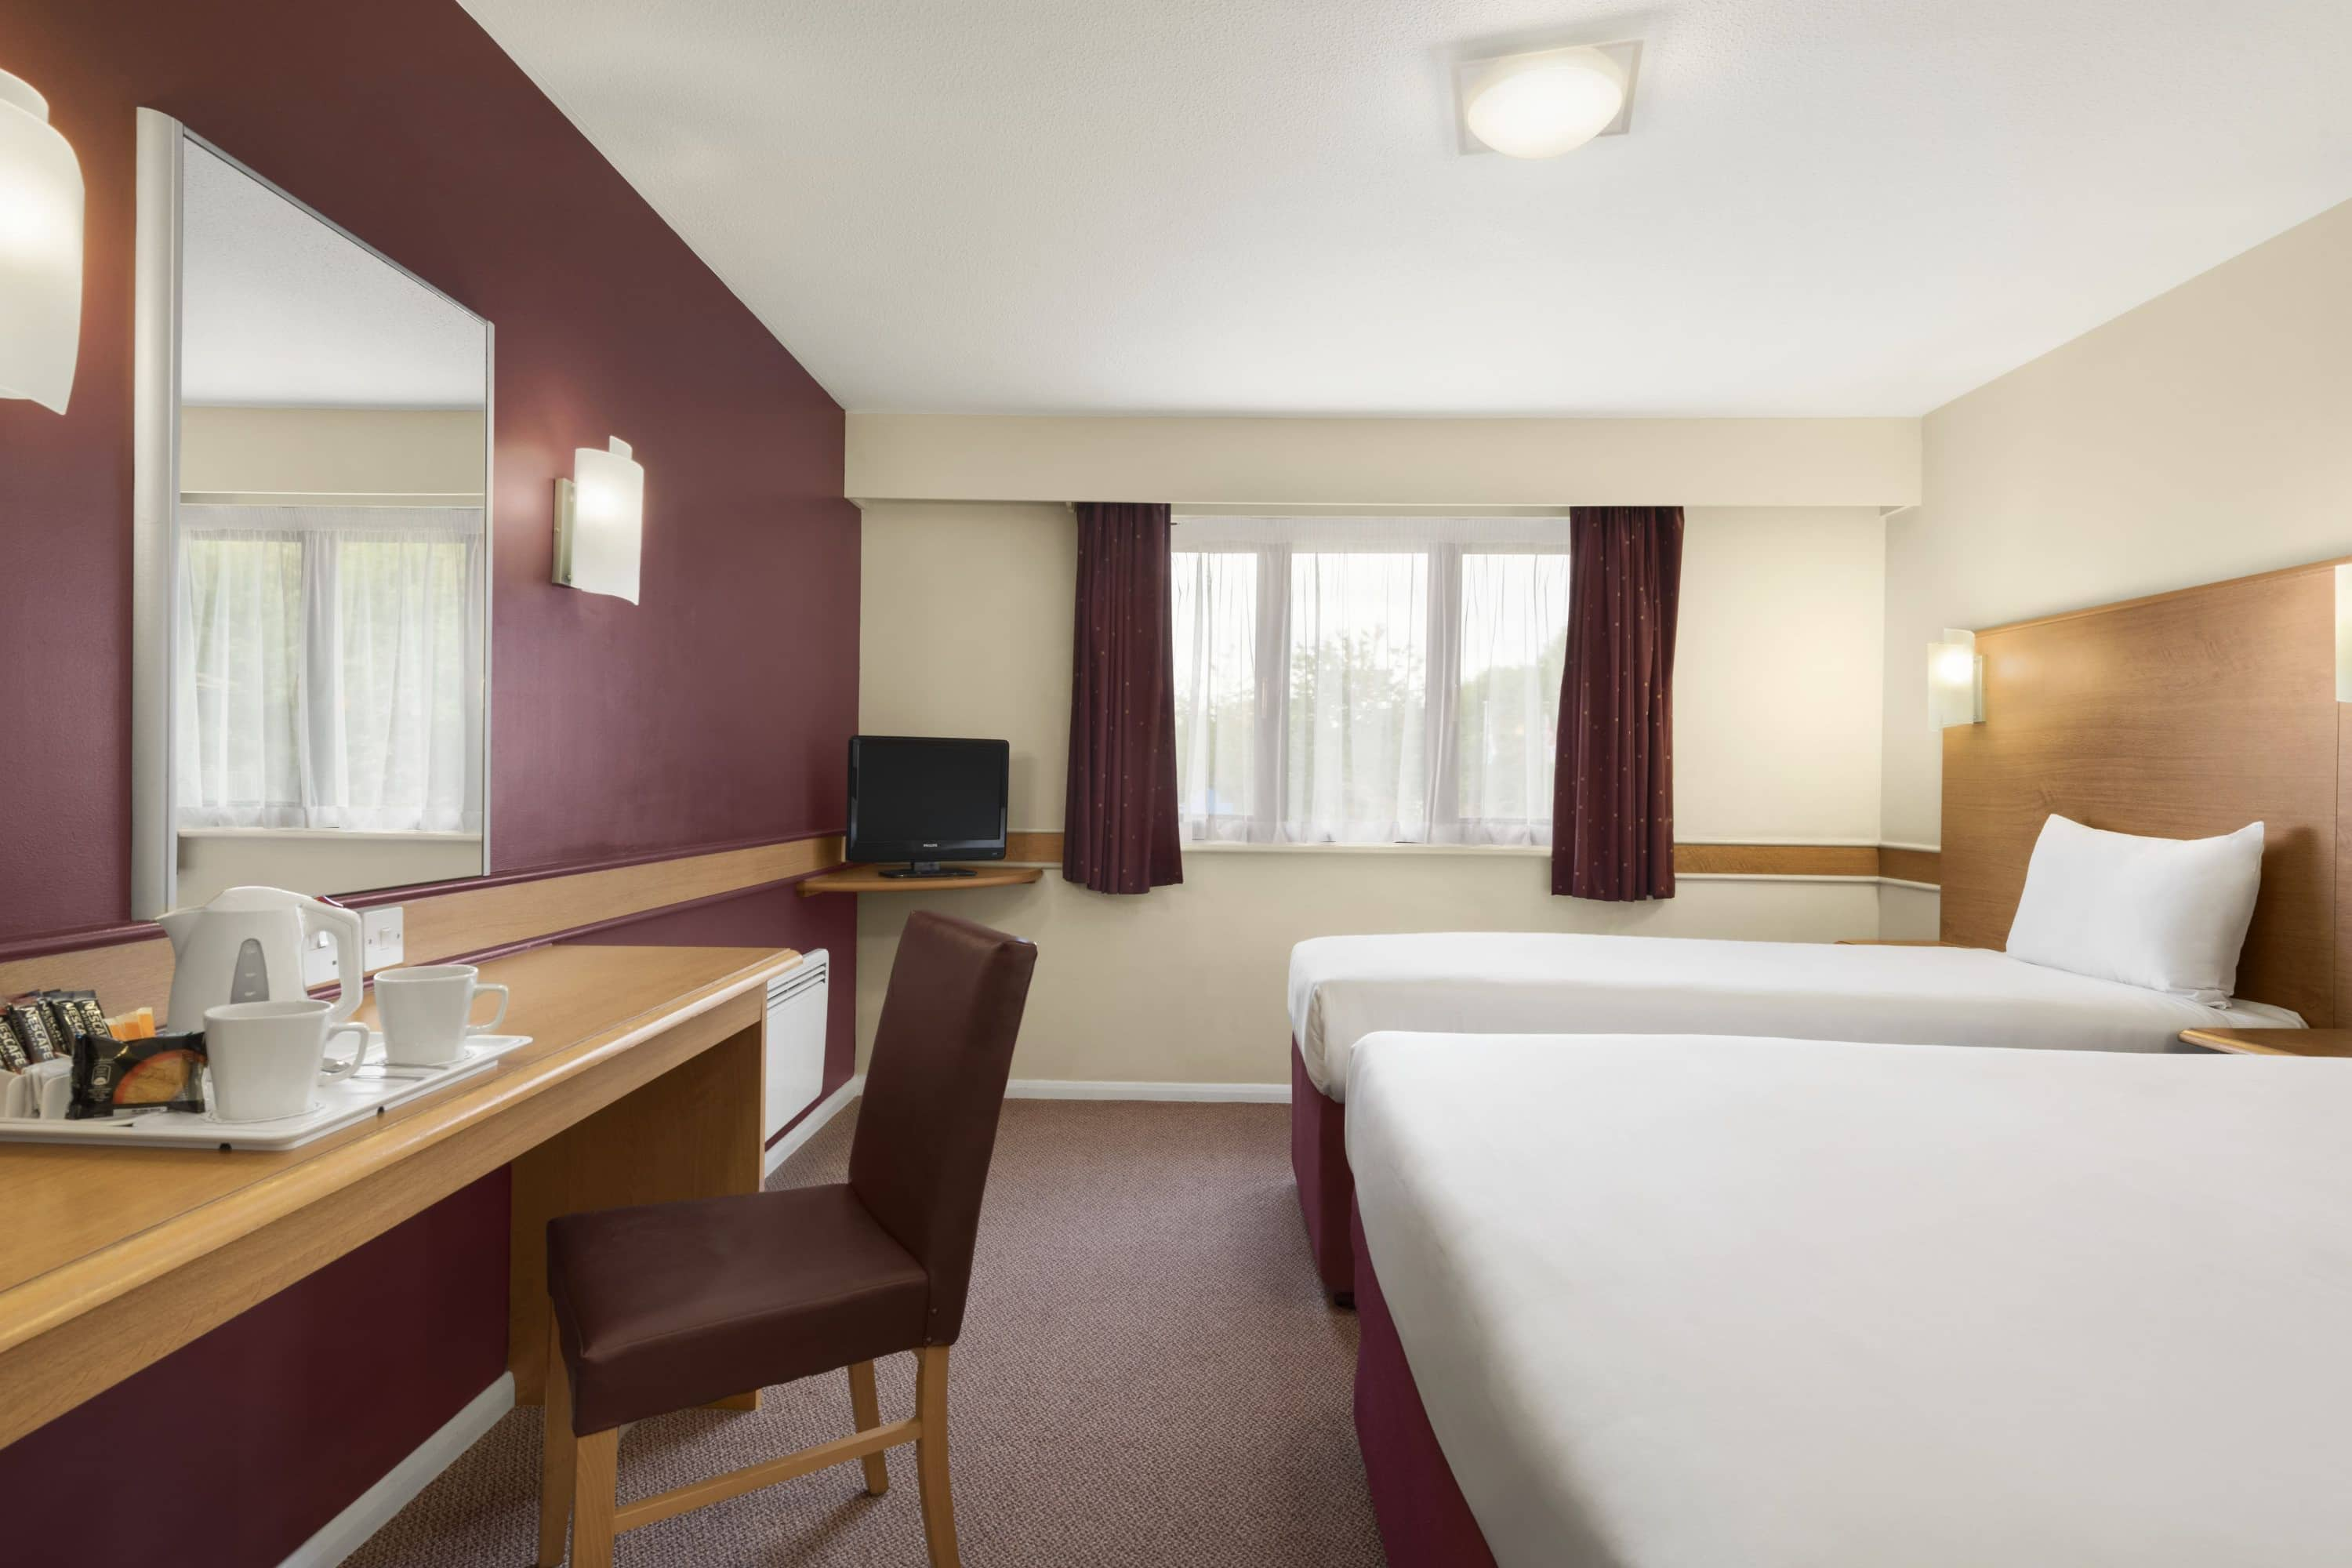 Guest room at the Days Inn Warwick North M40 in Warwickshire, Other than US/Canada